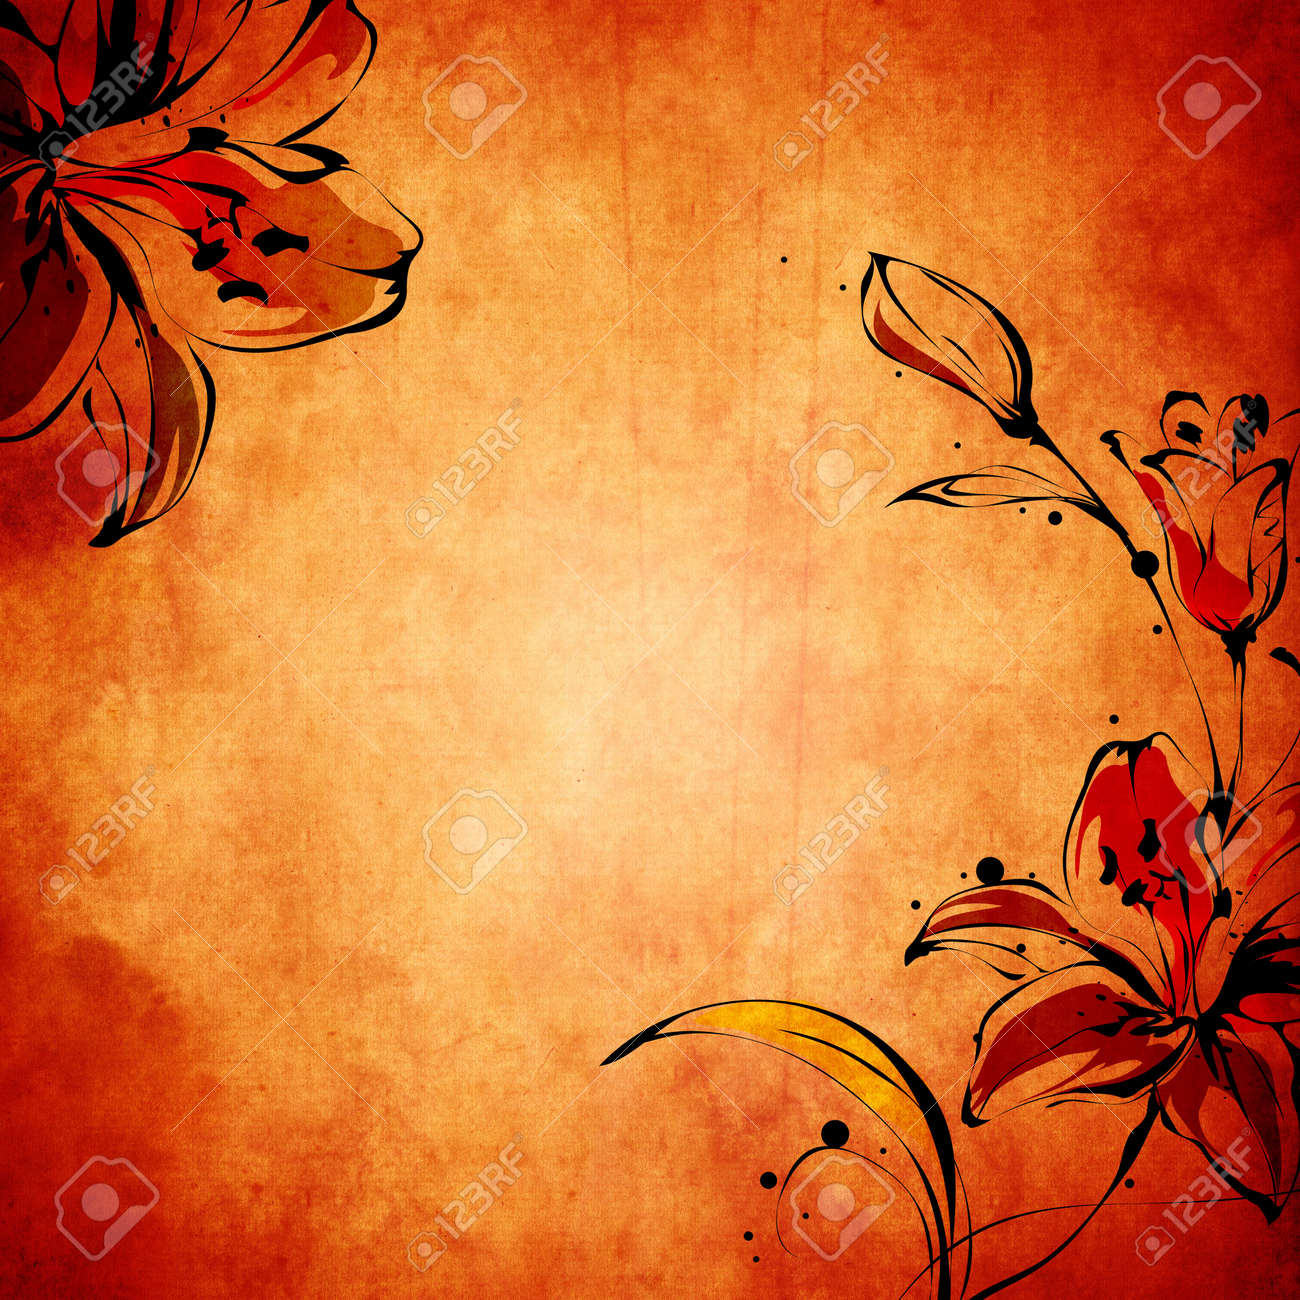 Vintage paper background with grunge and decorative details Stock Photo - 10529837